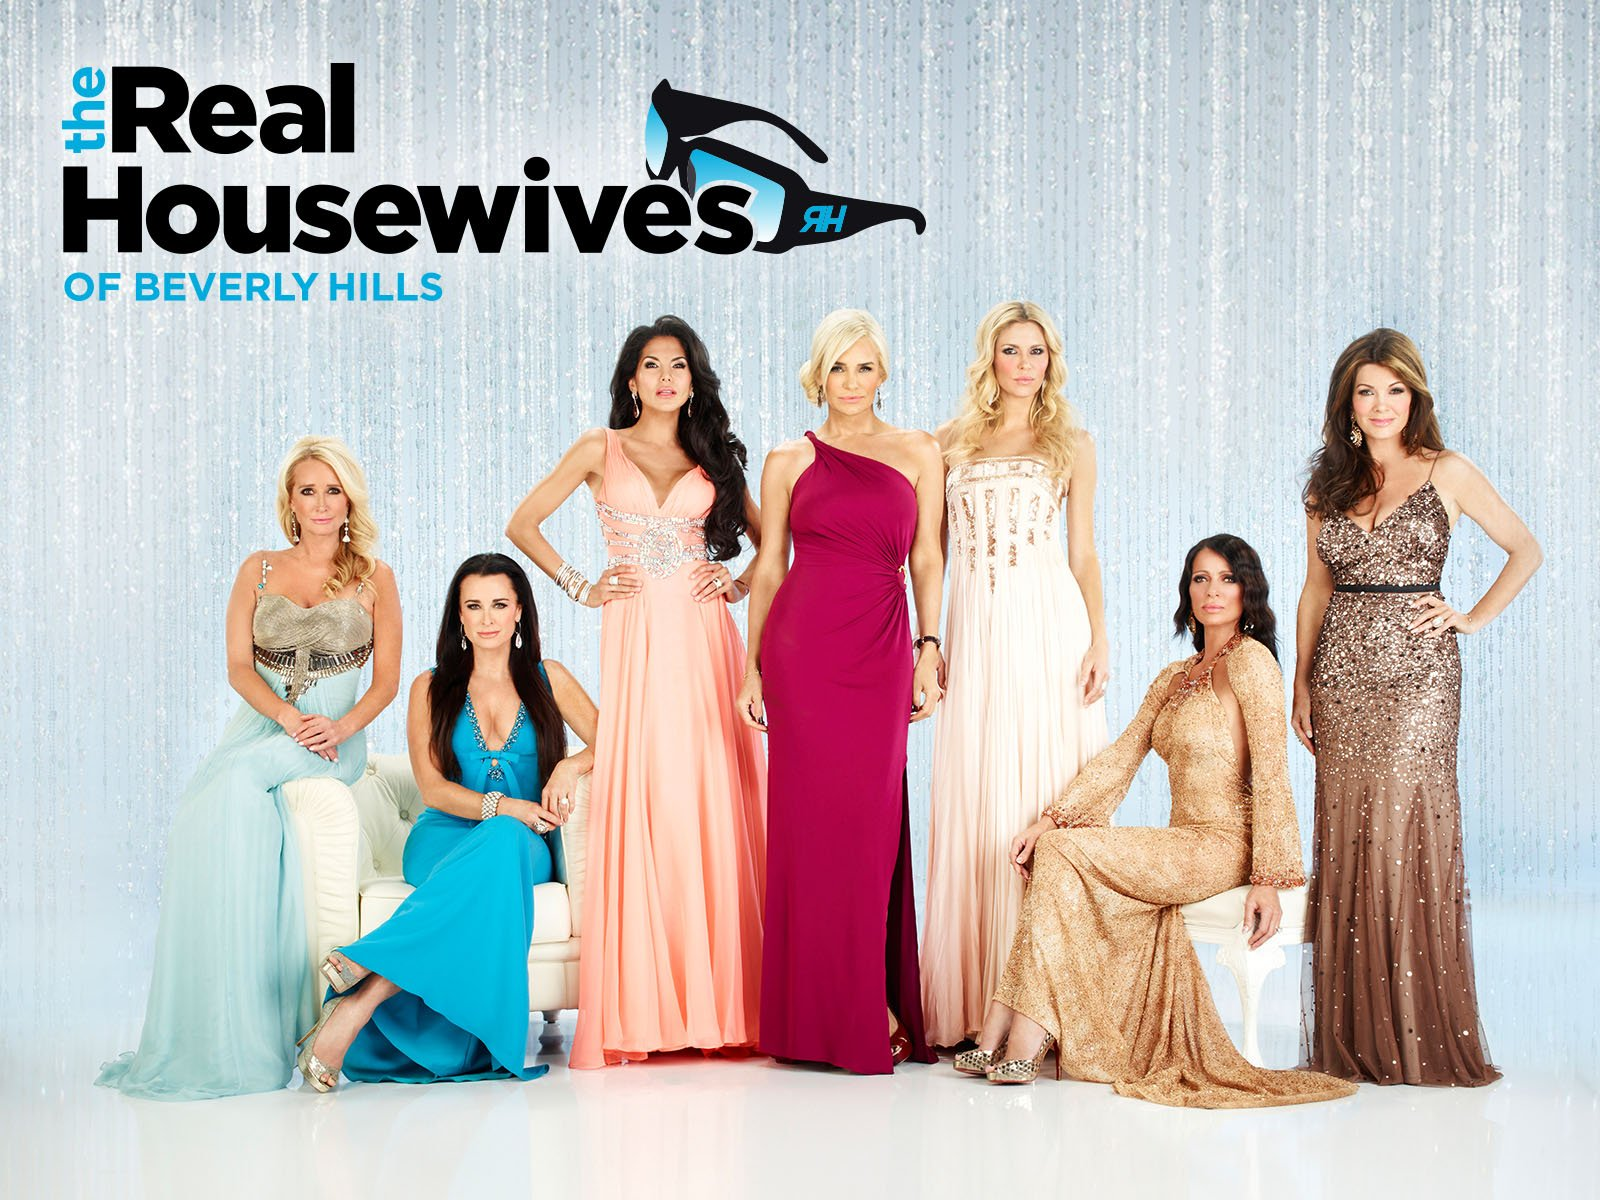 real housewives of beverly hills season 3 watch online free